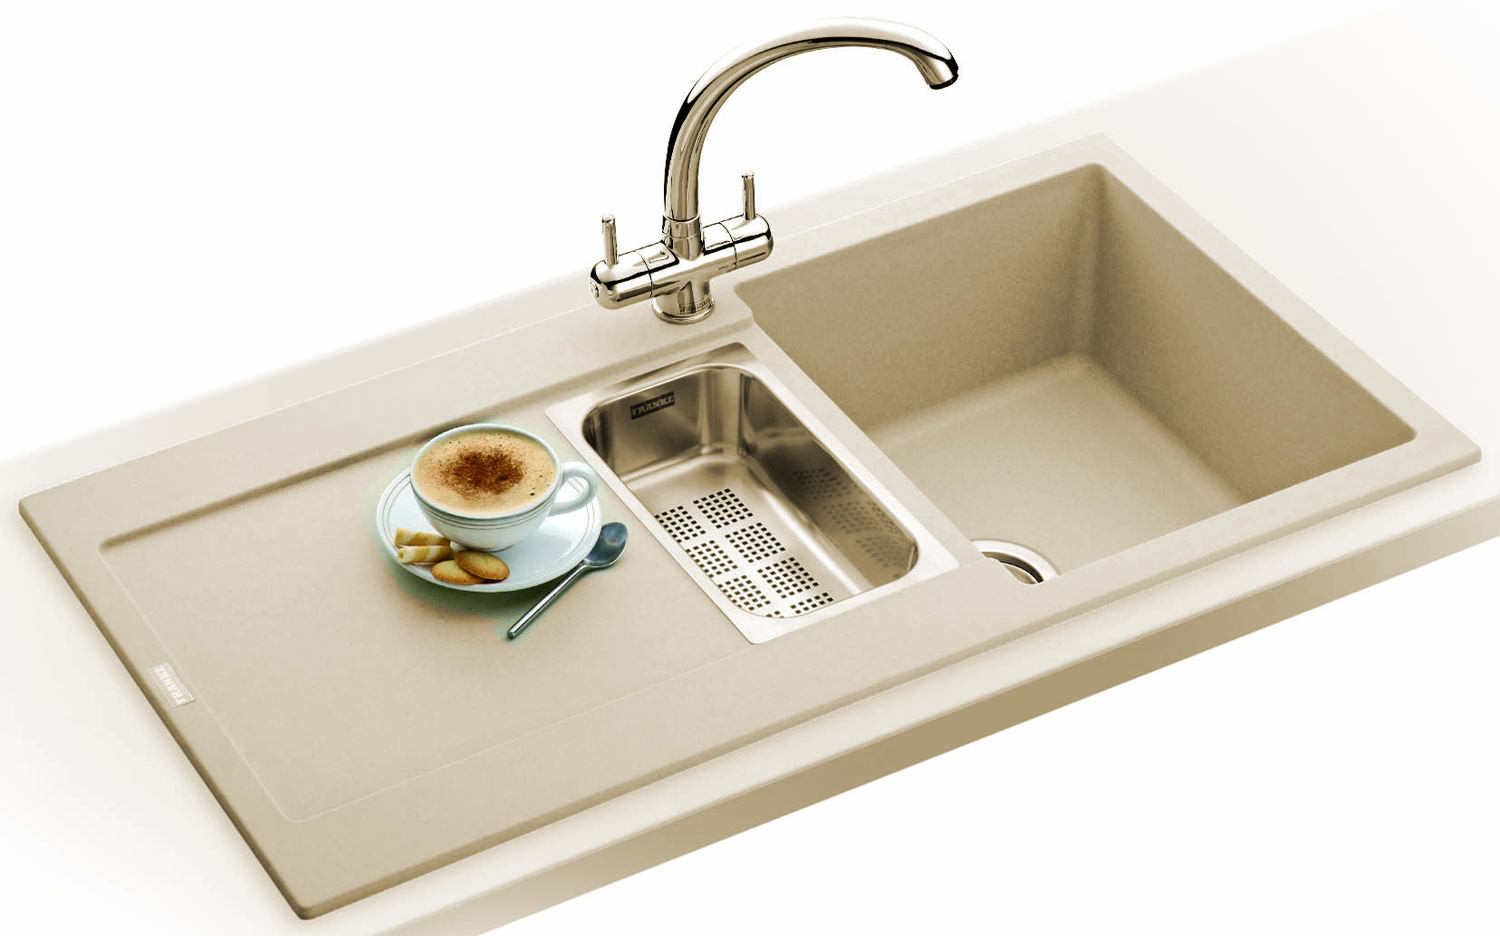 ... of Franke Maris MRG 651 Fragranite Coffee 1.5 Bowl Kitchen Inset Sink